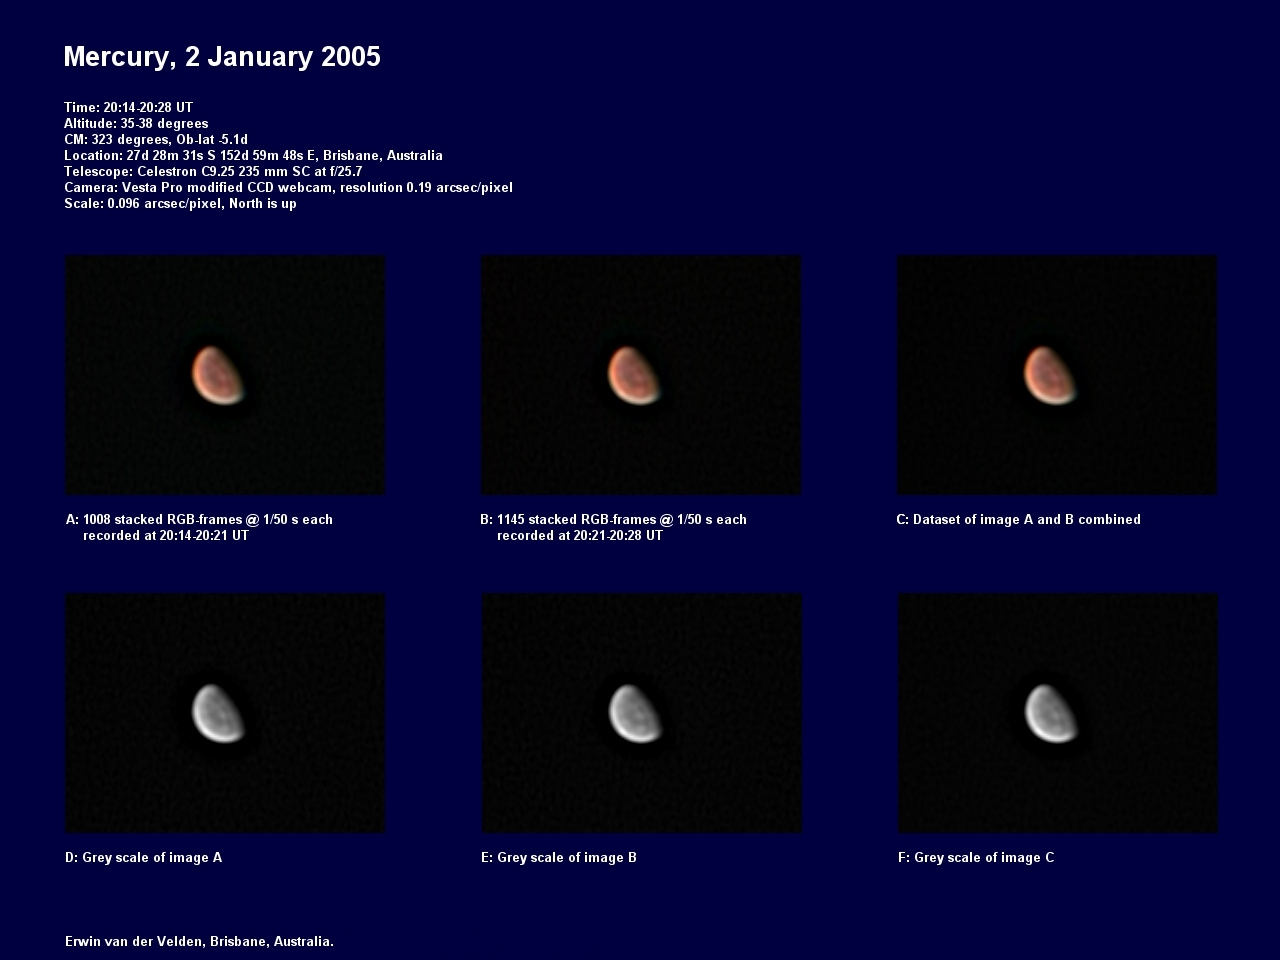 Mercury image captured on the 2nd of January 2005